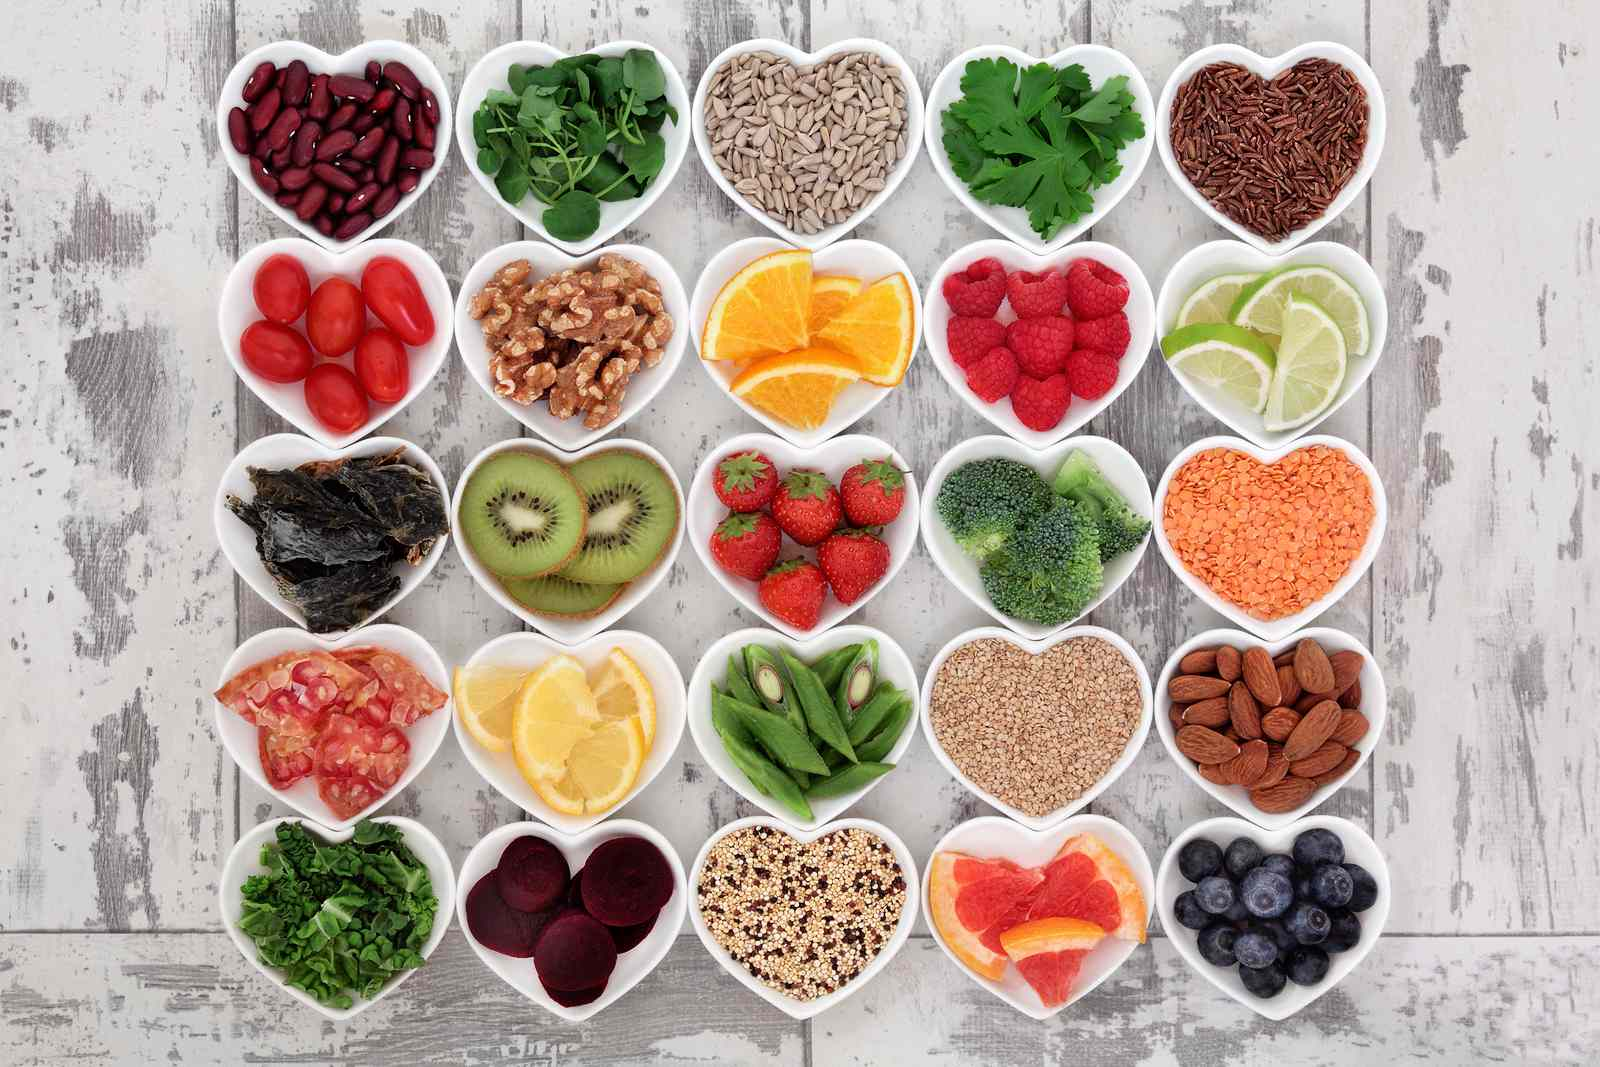 Heart-Healthy Foods to Power Your Body